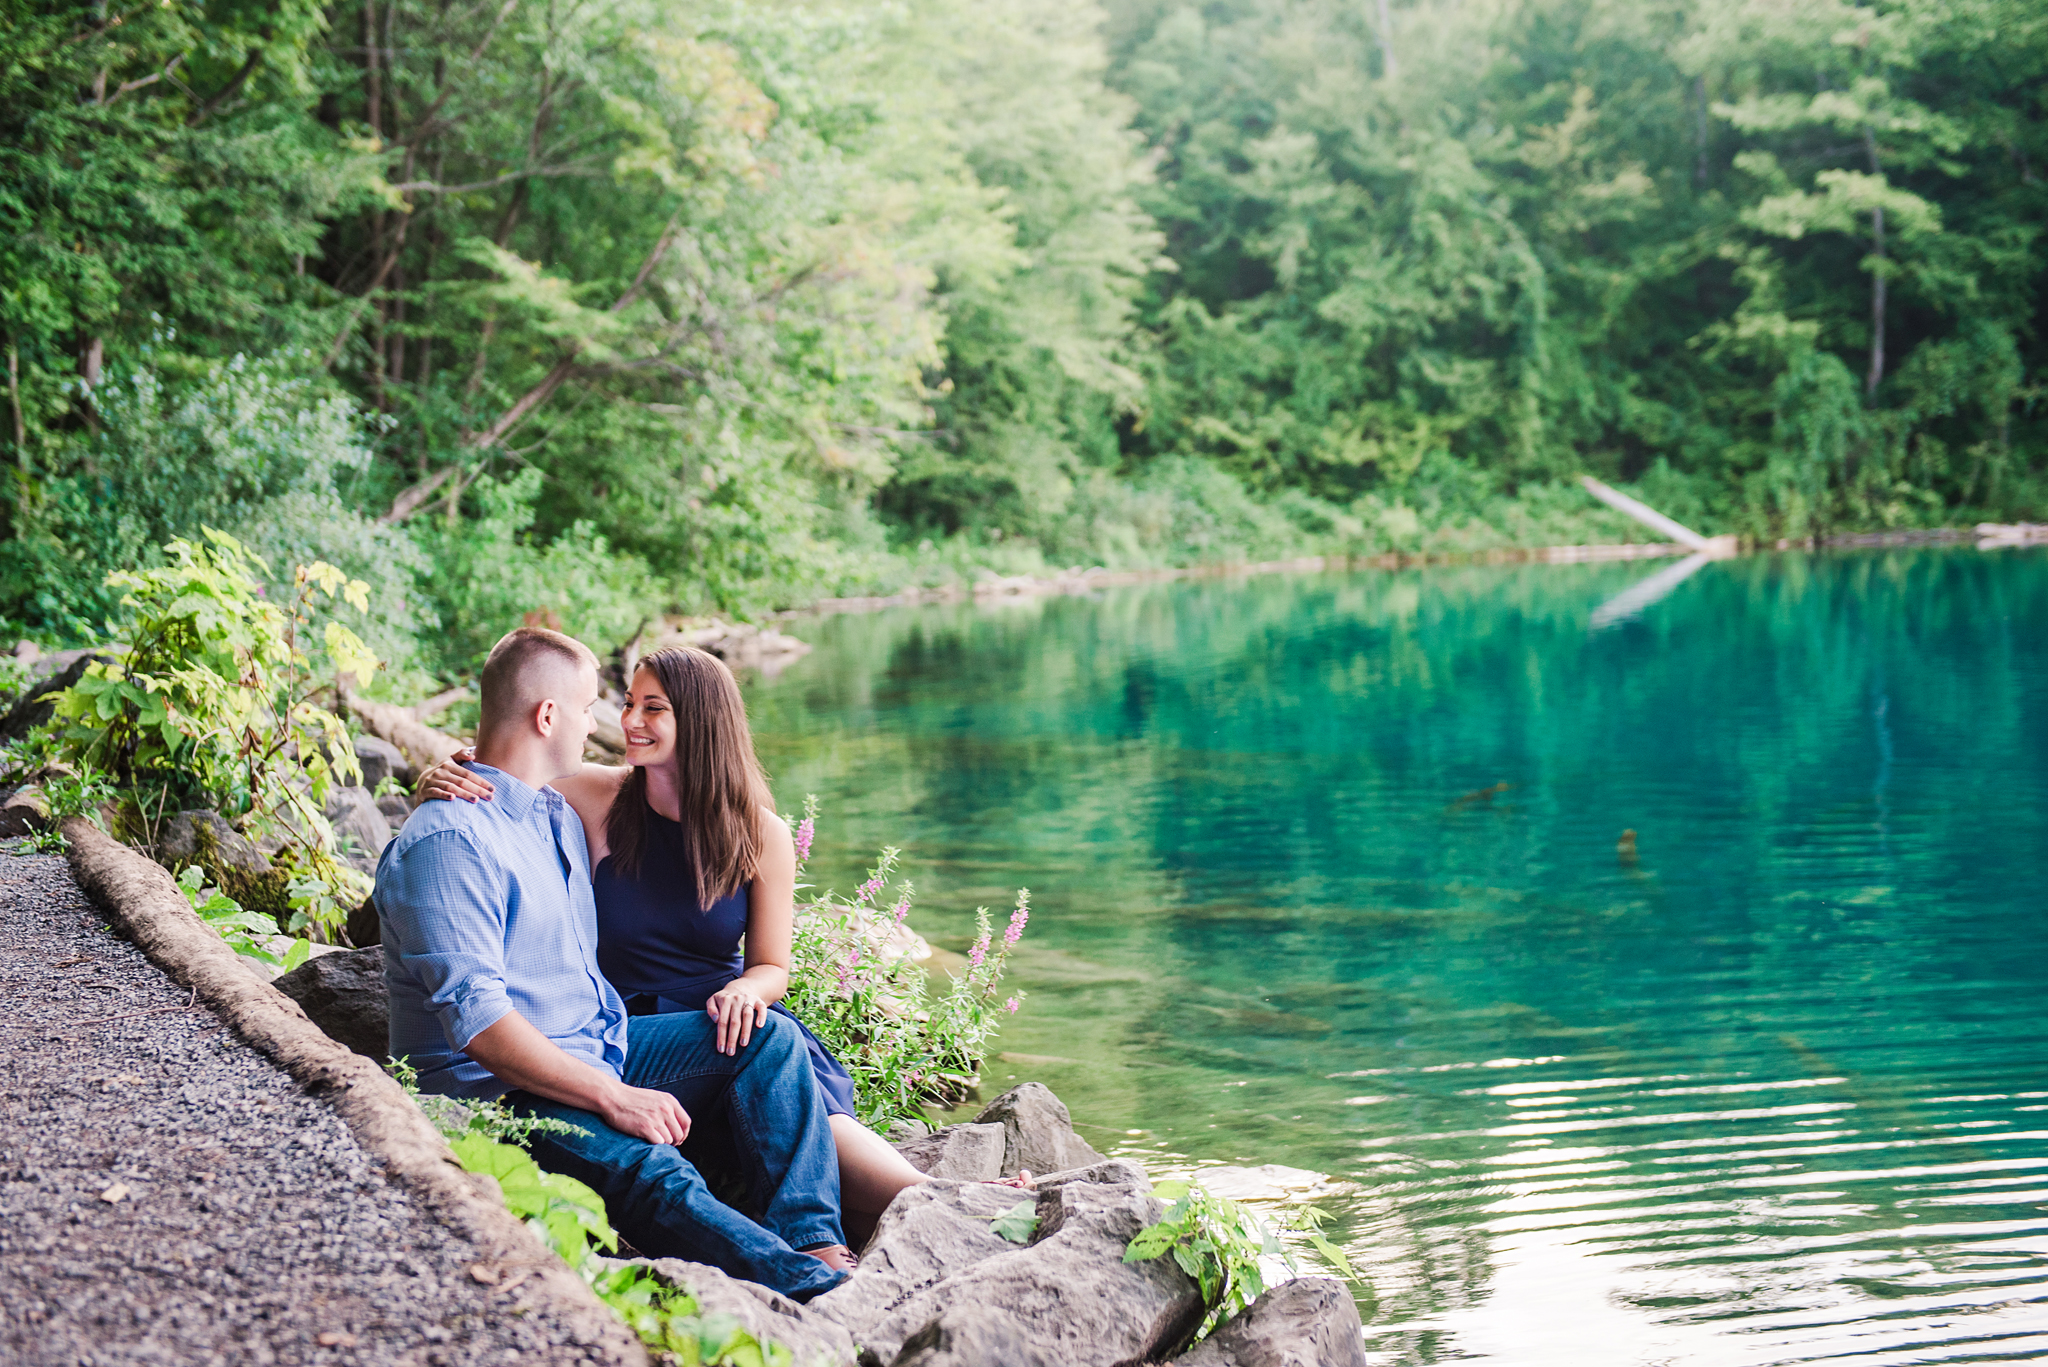 Green_Lakes_State_Park_Syracuse_Engagement_Session_JILL_STUDIO_Rochester_NY_Photographer_DSC_1135.jpg